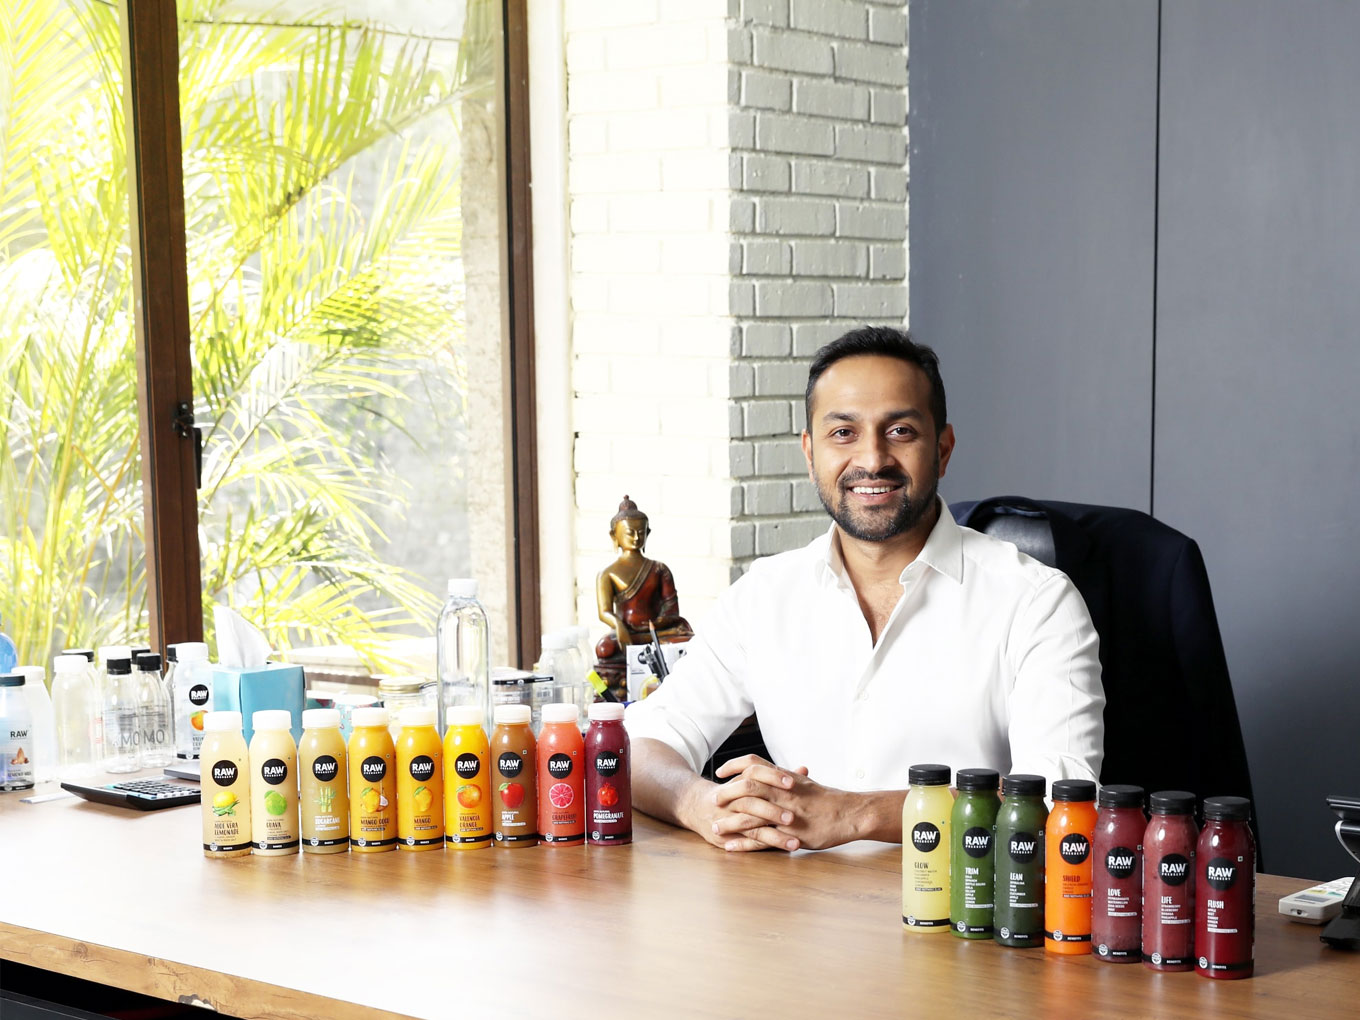 Alteria Capital Makes First Equity Plus Debt Investment Of $4.8 Mn In Raw Pressery